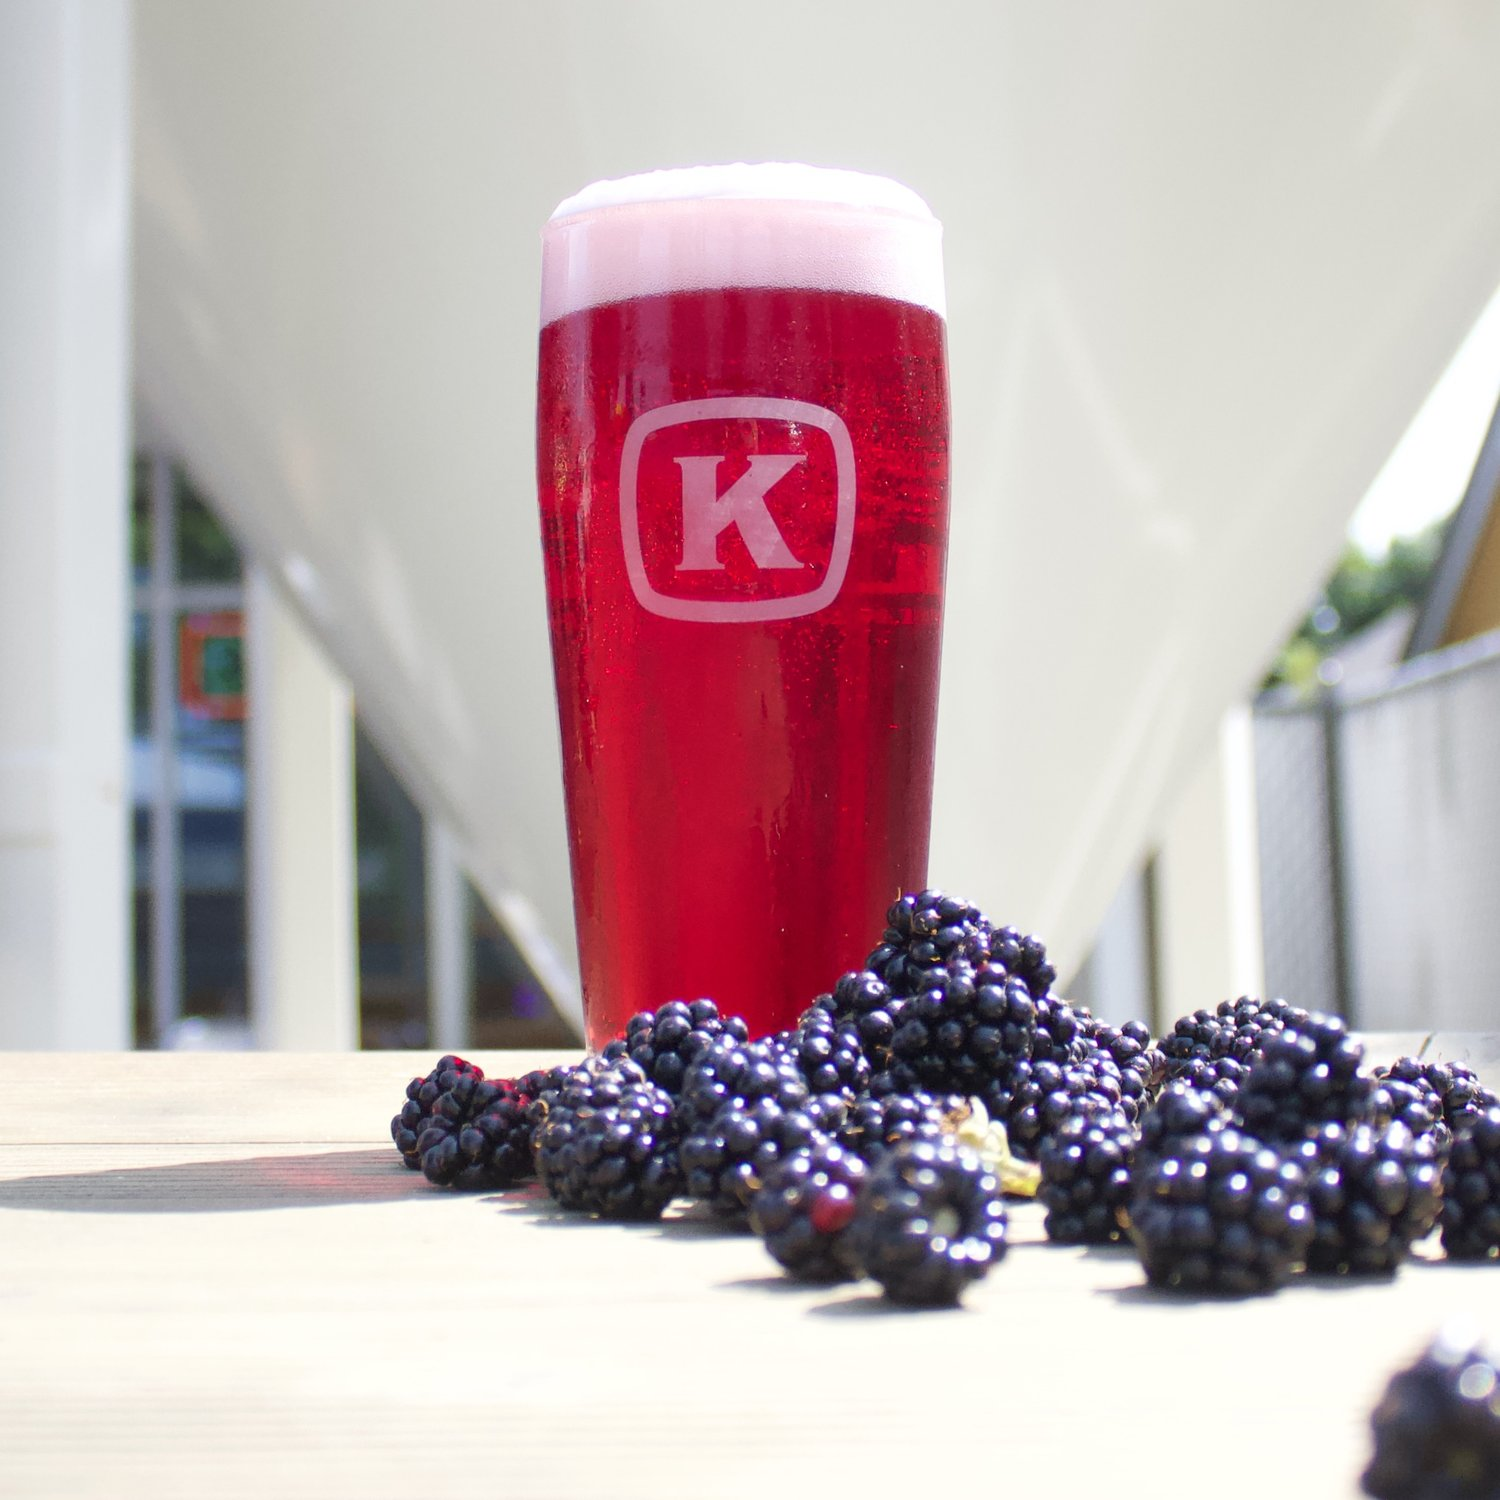 image sourced from Kulshan Brewing Company